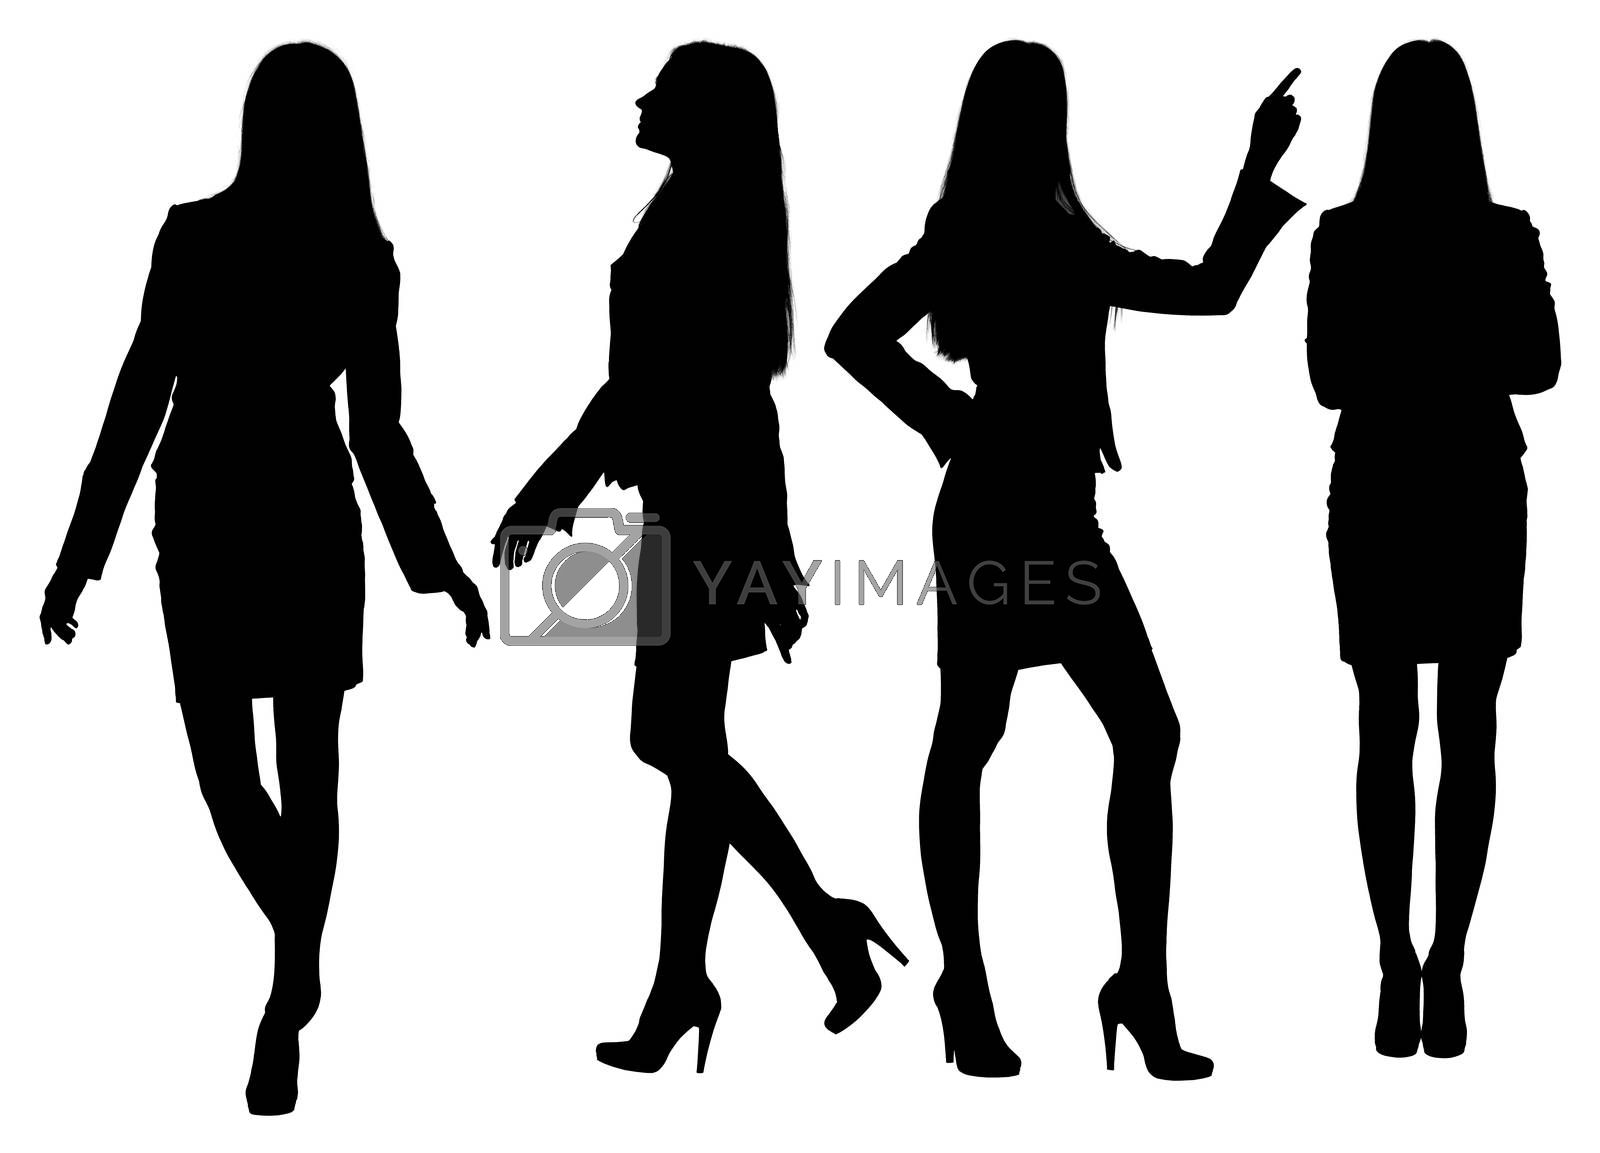 Business woman standing silhouette. Isolated white background